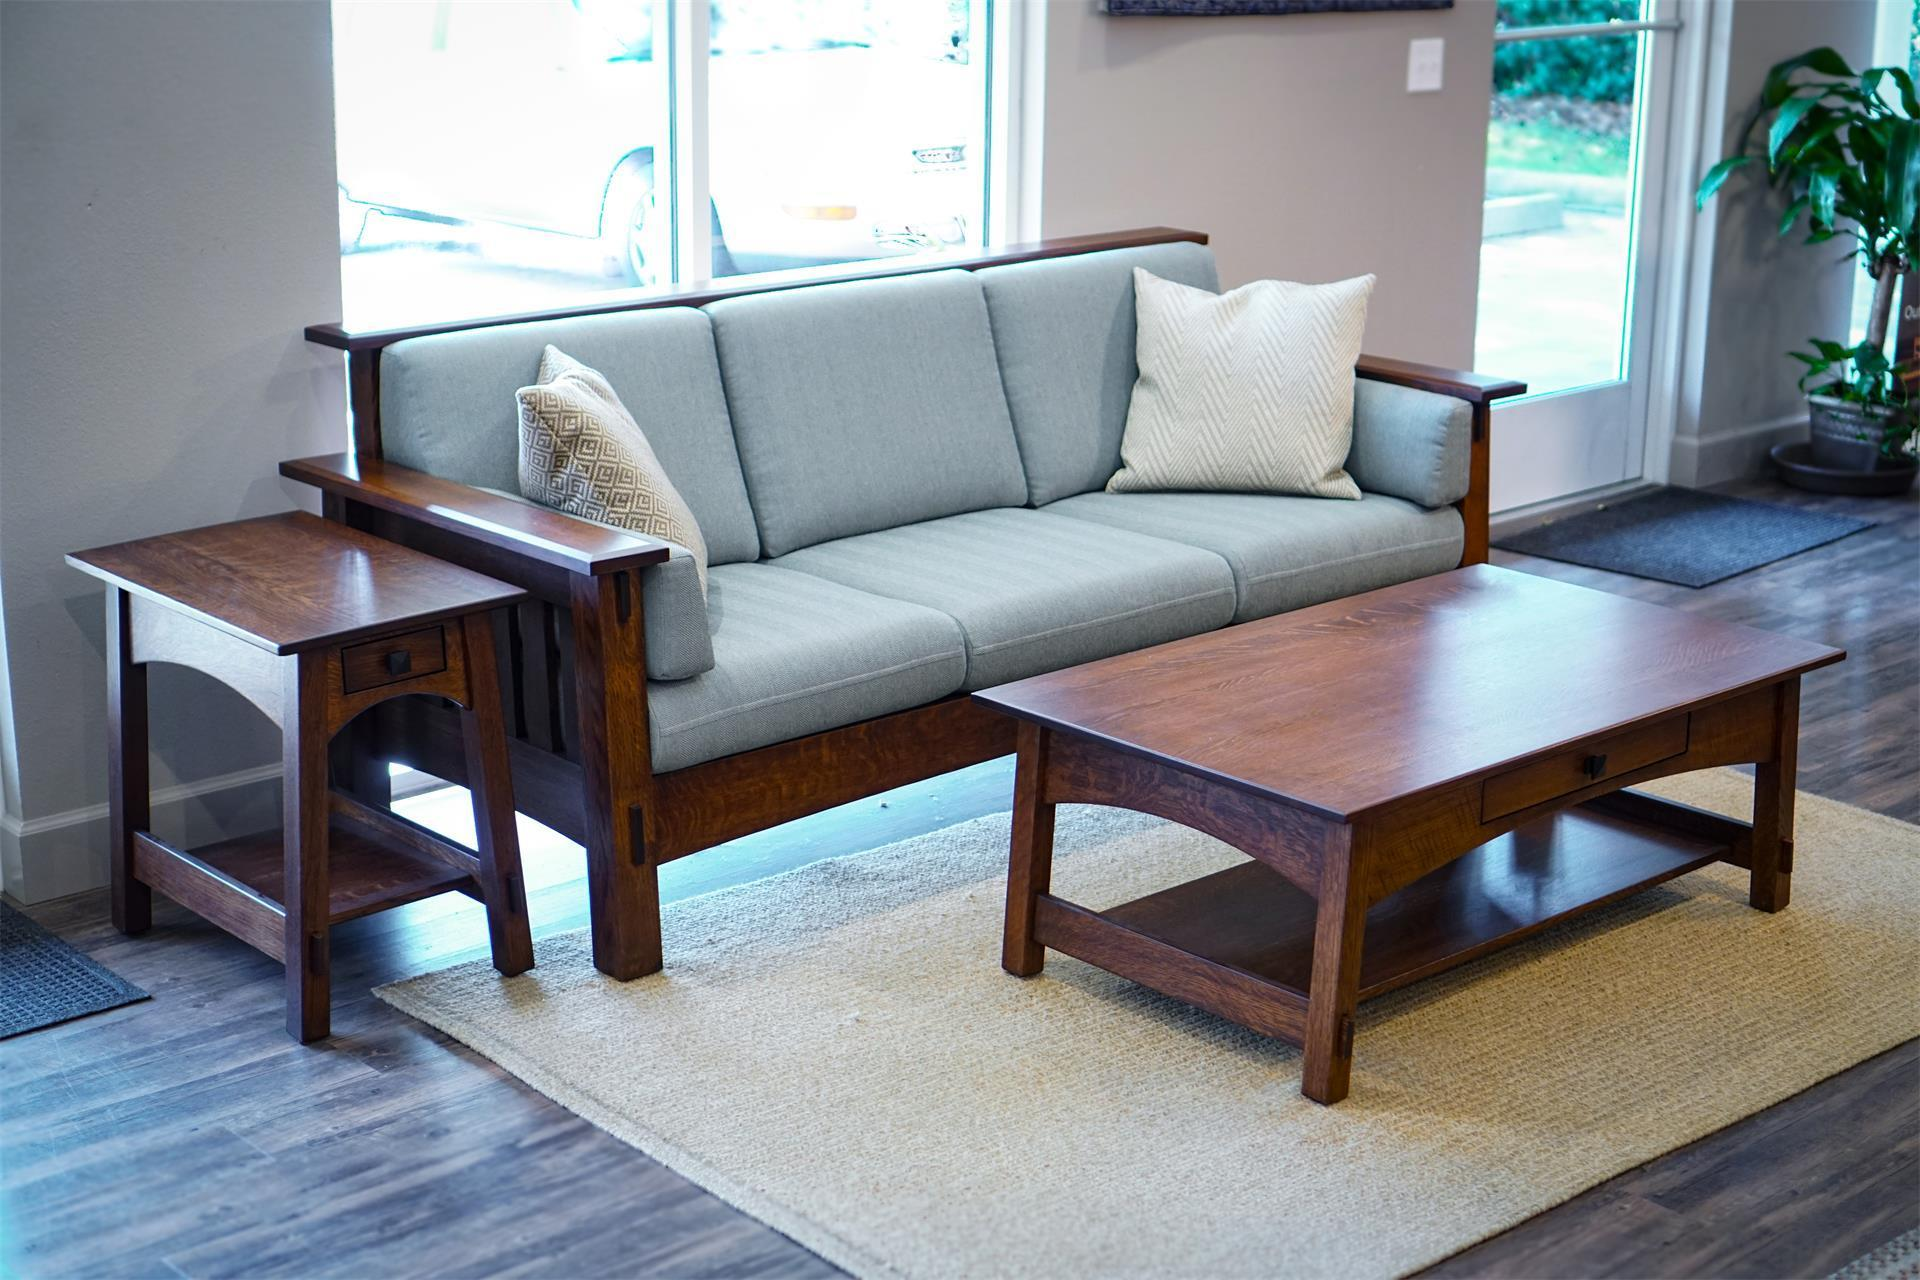 McCoy 3 Piece Living Room Set from DutchCrafters Amish Furniture